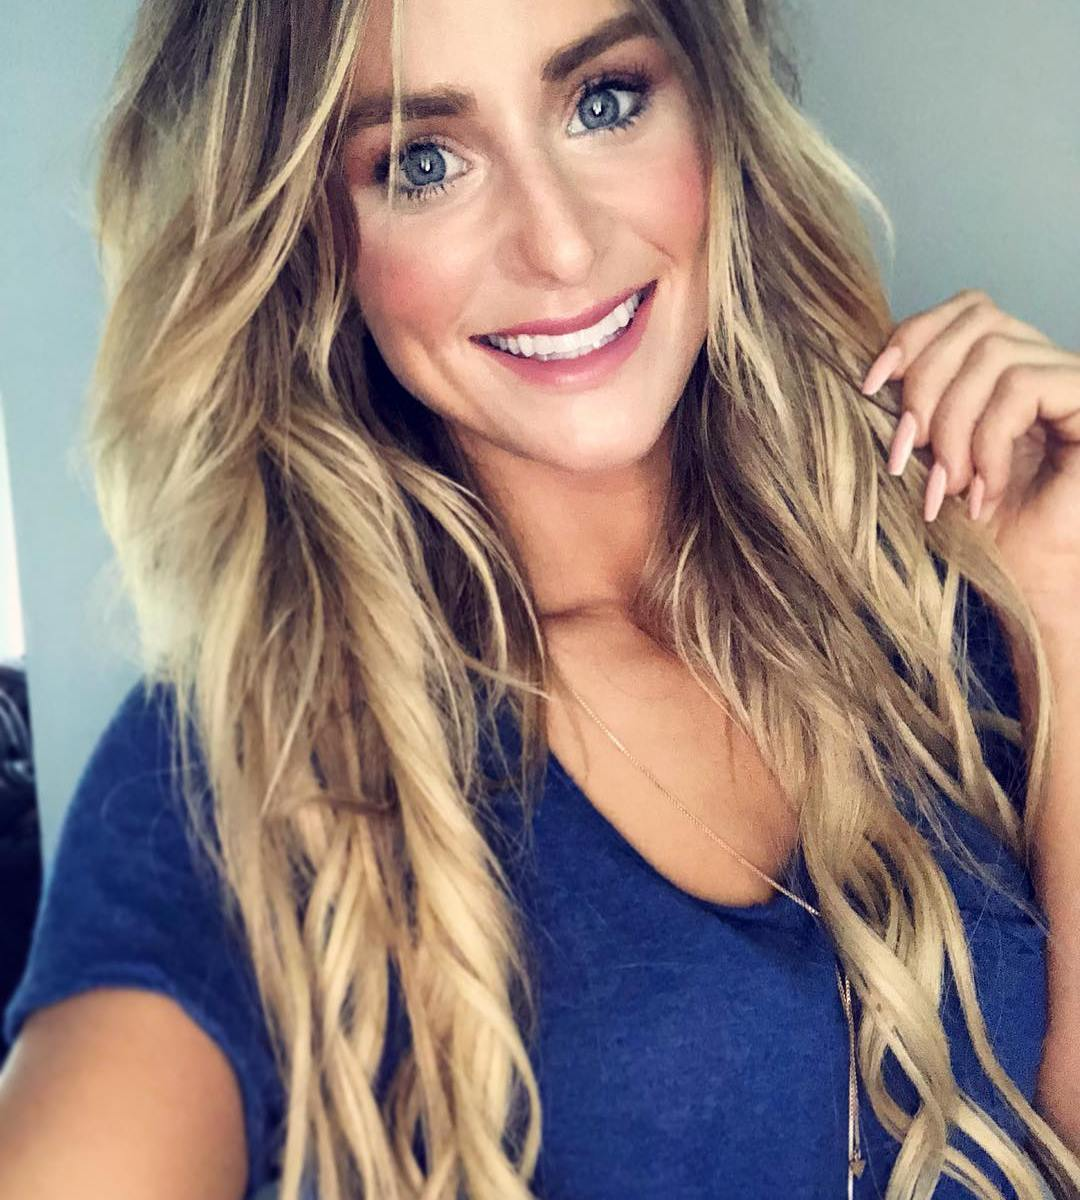 'Teen Mom 2' Star Leah Messer Responds to Photoshop Accusations: 'Rude!'